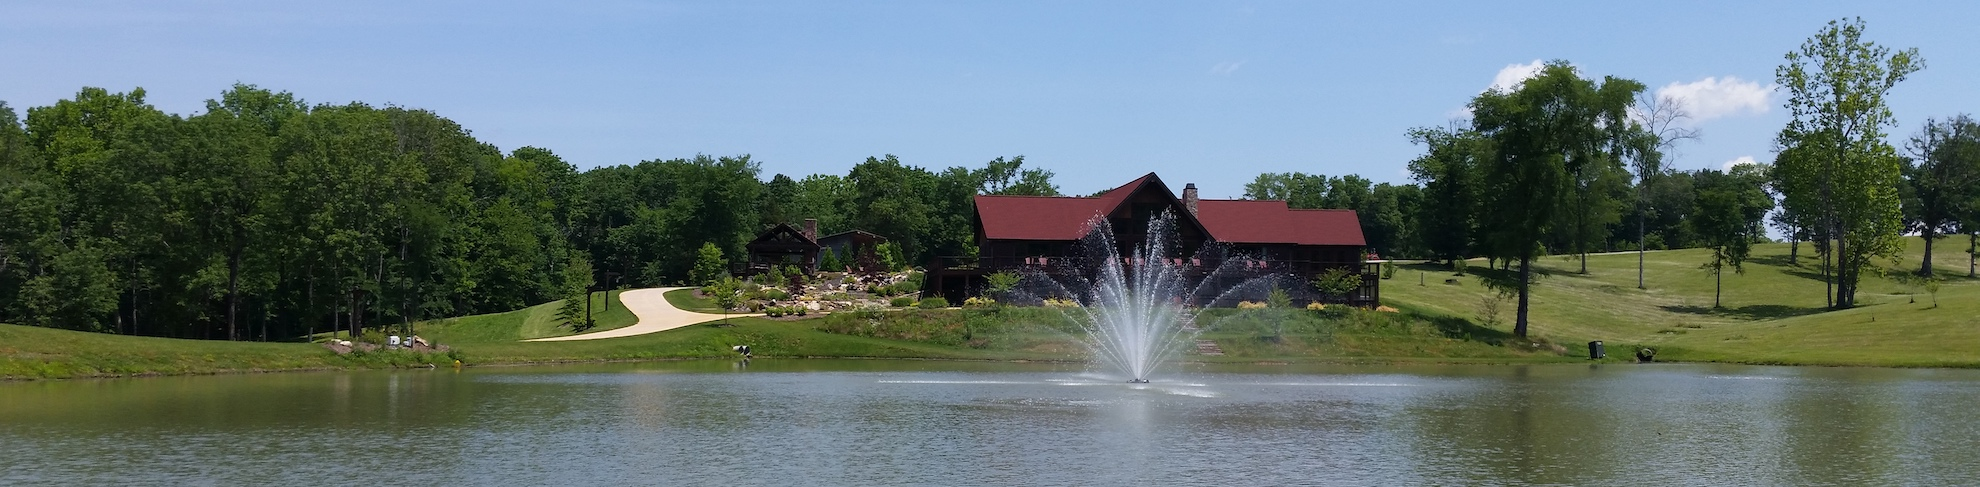 Pond Maintenance Aeration, Fountains, Weed Control by Pond Lake Management